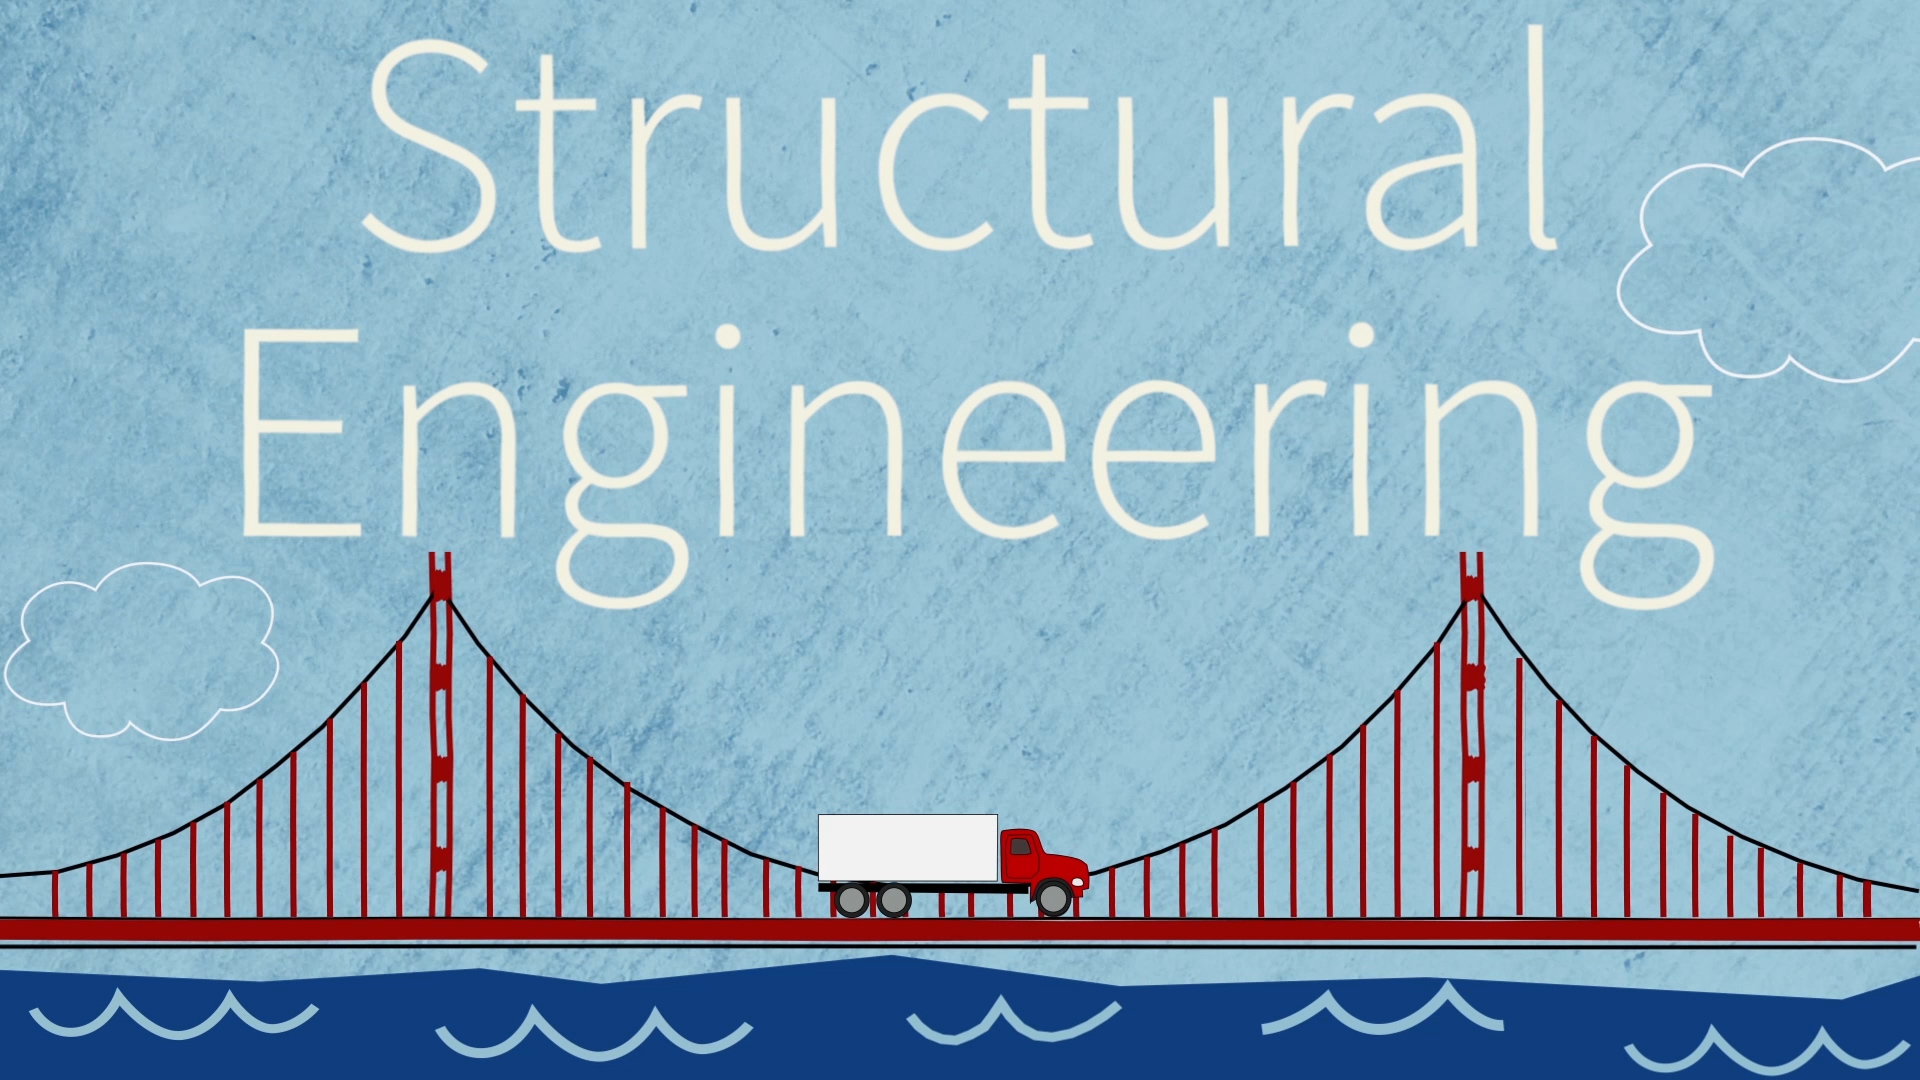 Civil Engineering Quotes Wallpapers Engineering Is Converting Buses To Showers For The